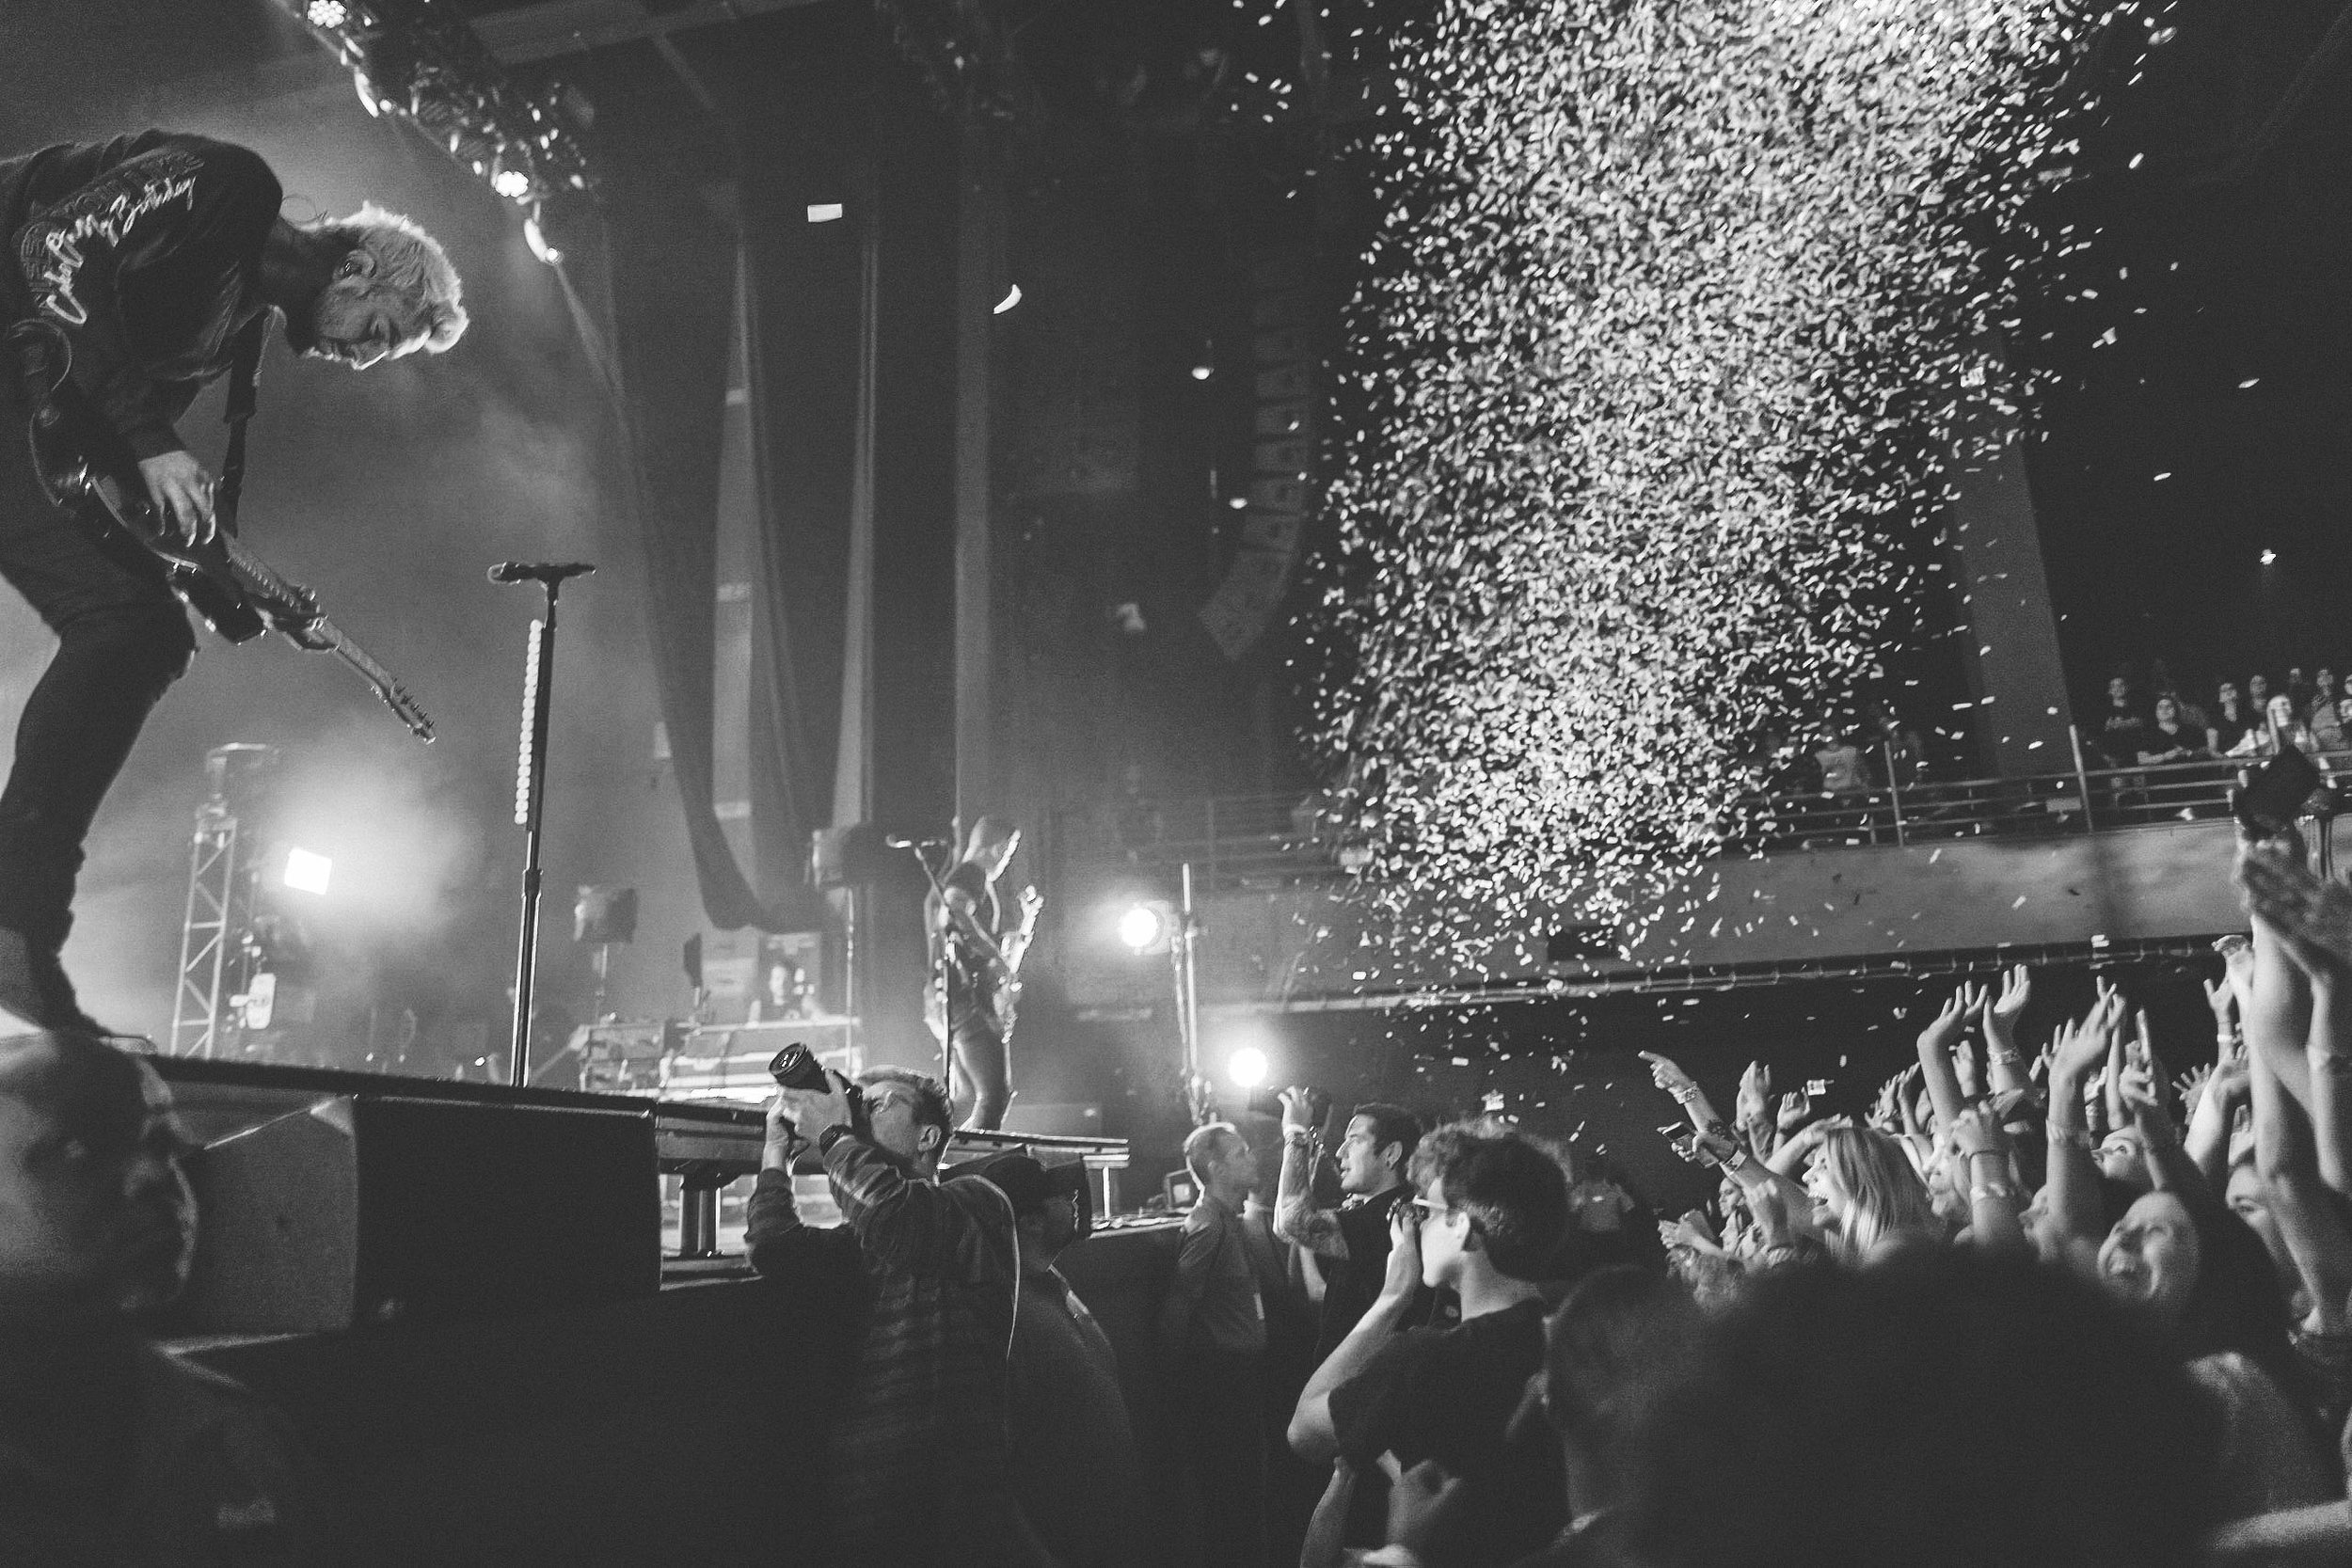 Our student Reed shooting for   All Time Low  . Check out the shot he captured of   Jack Barakat     below!